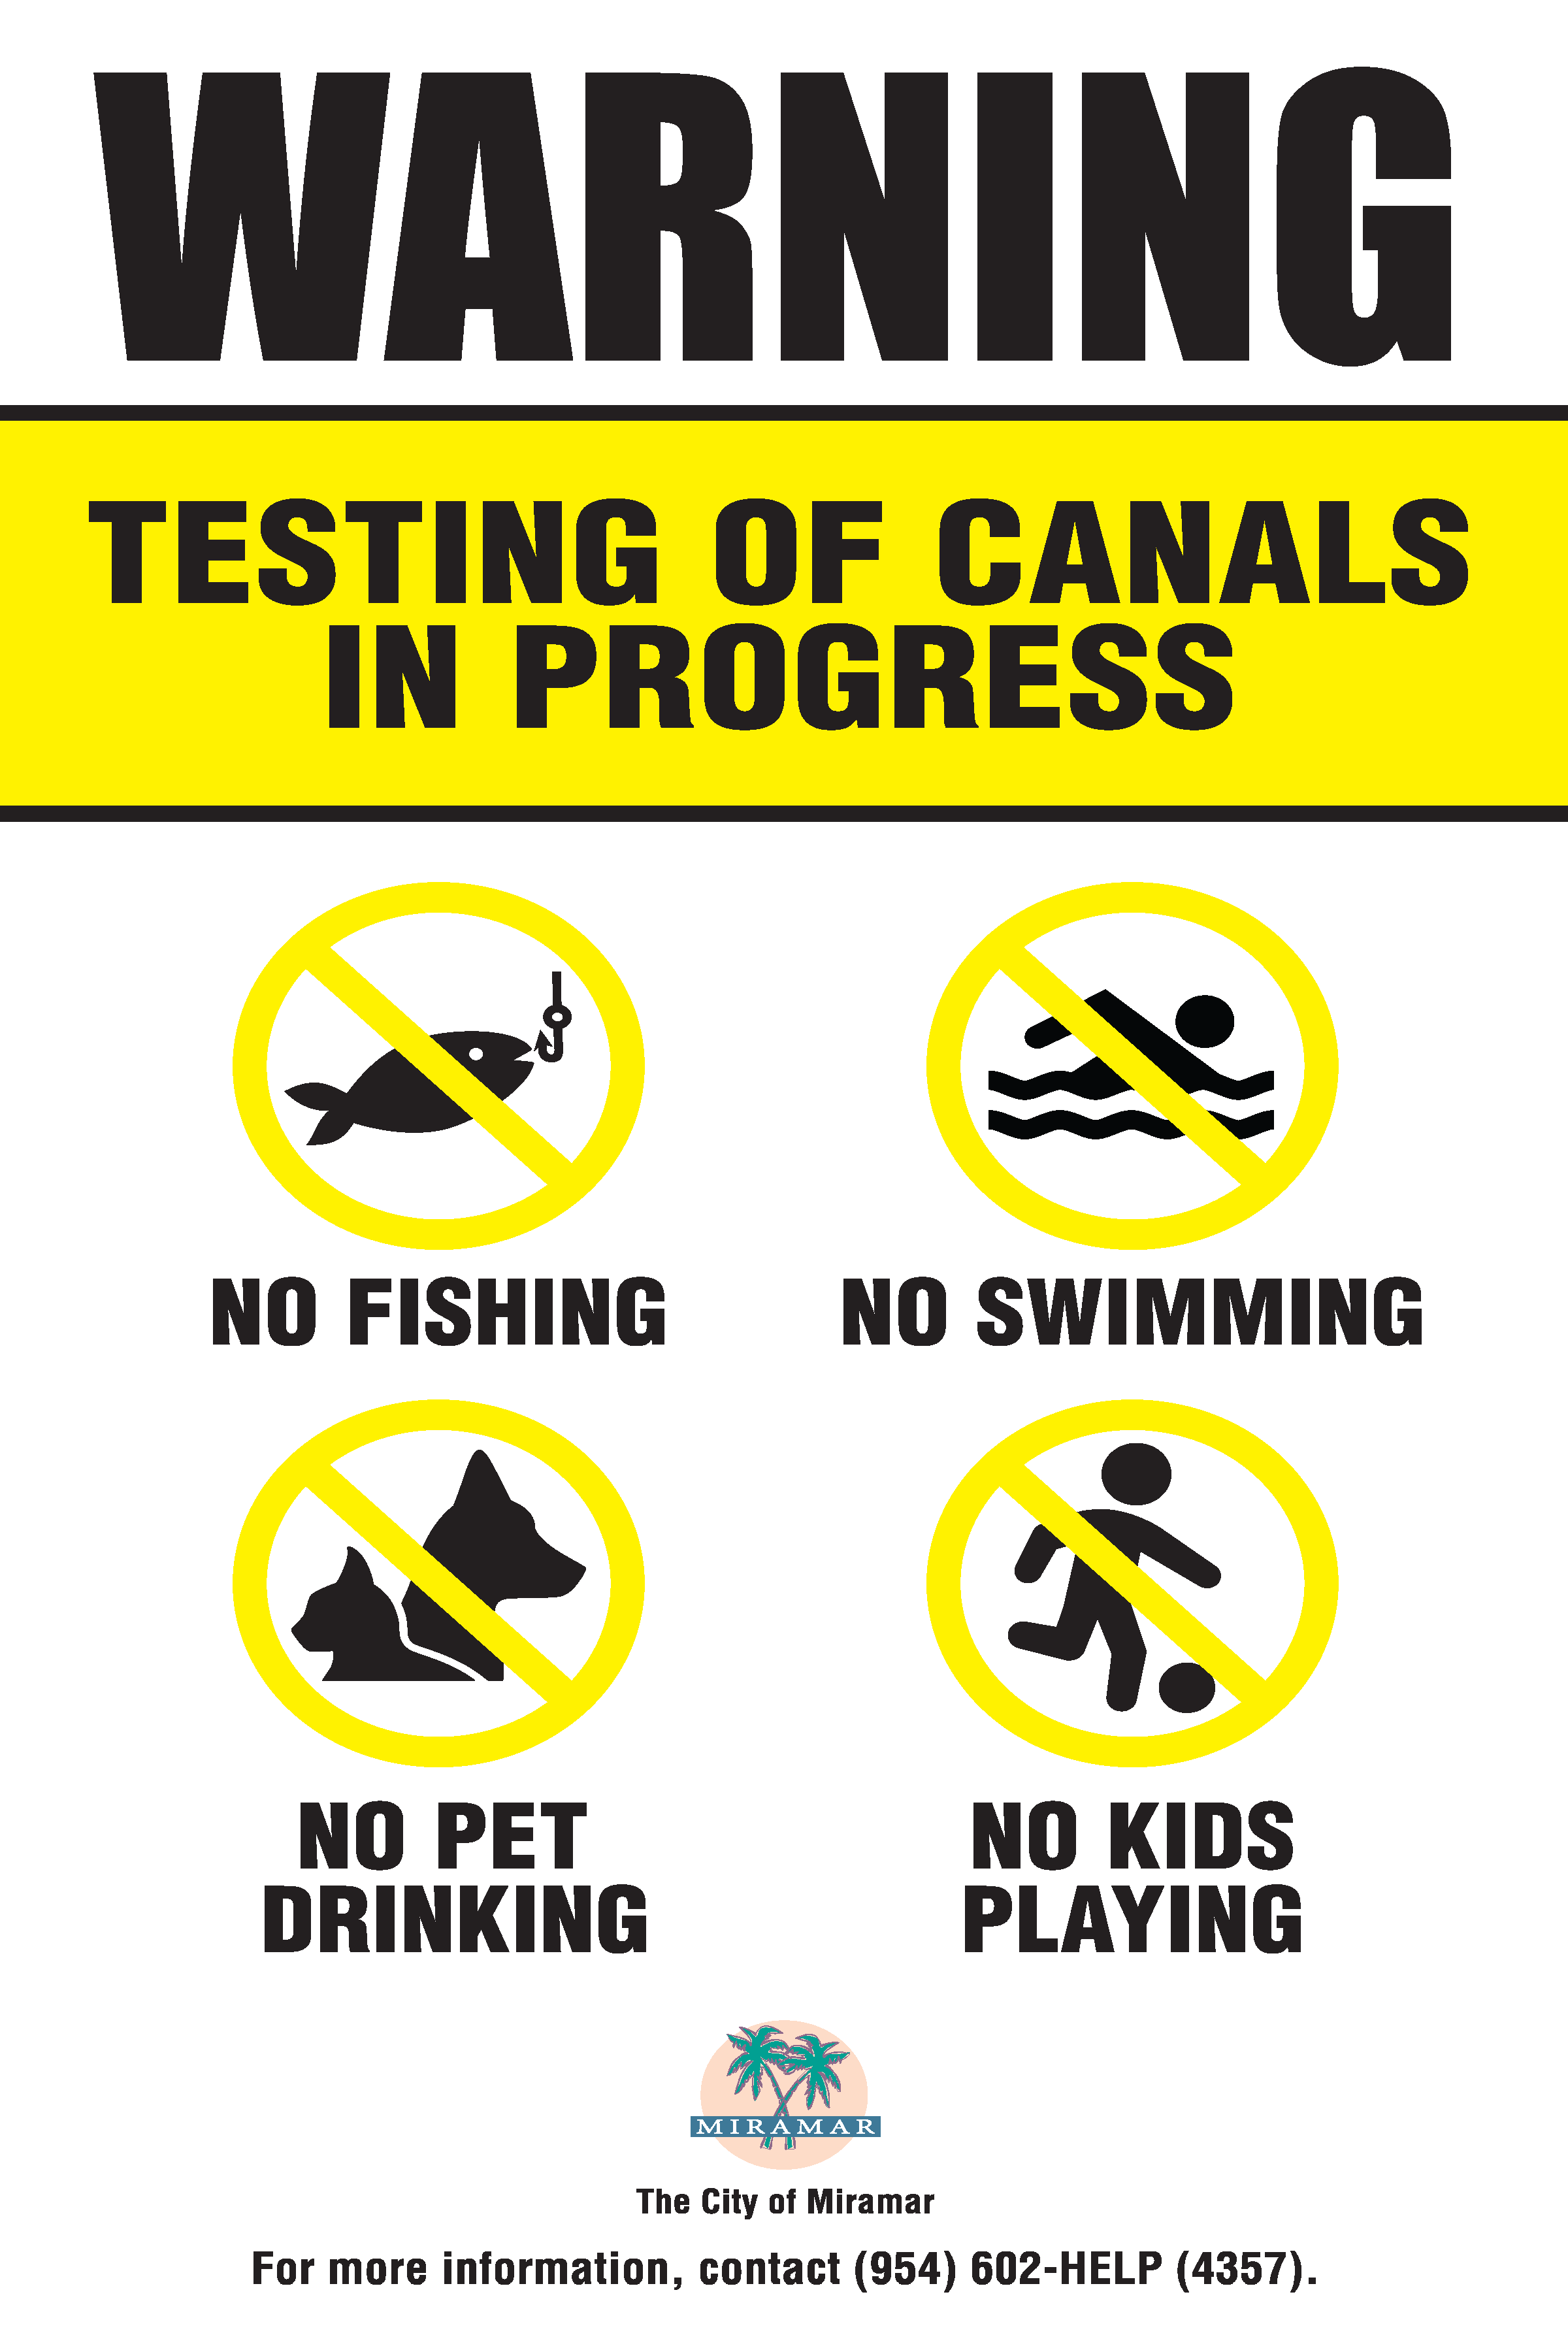 CCR Canal Signage